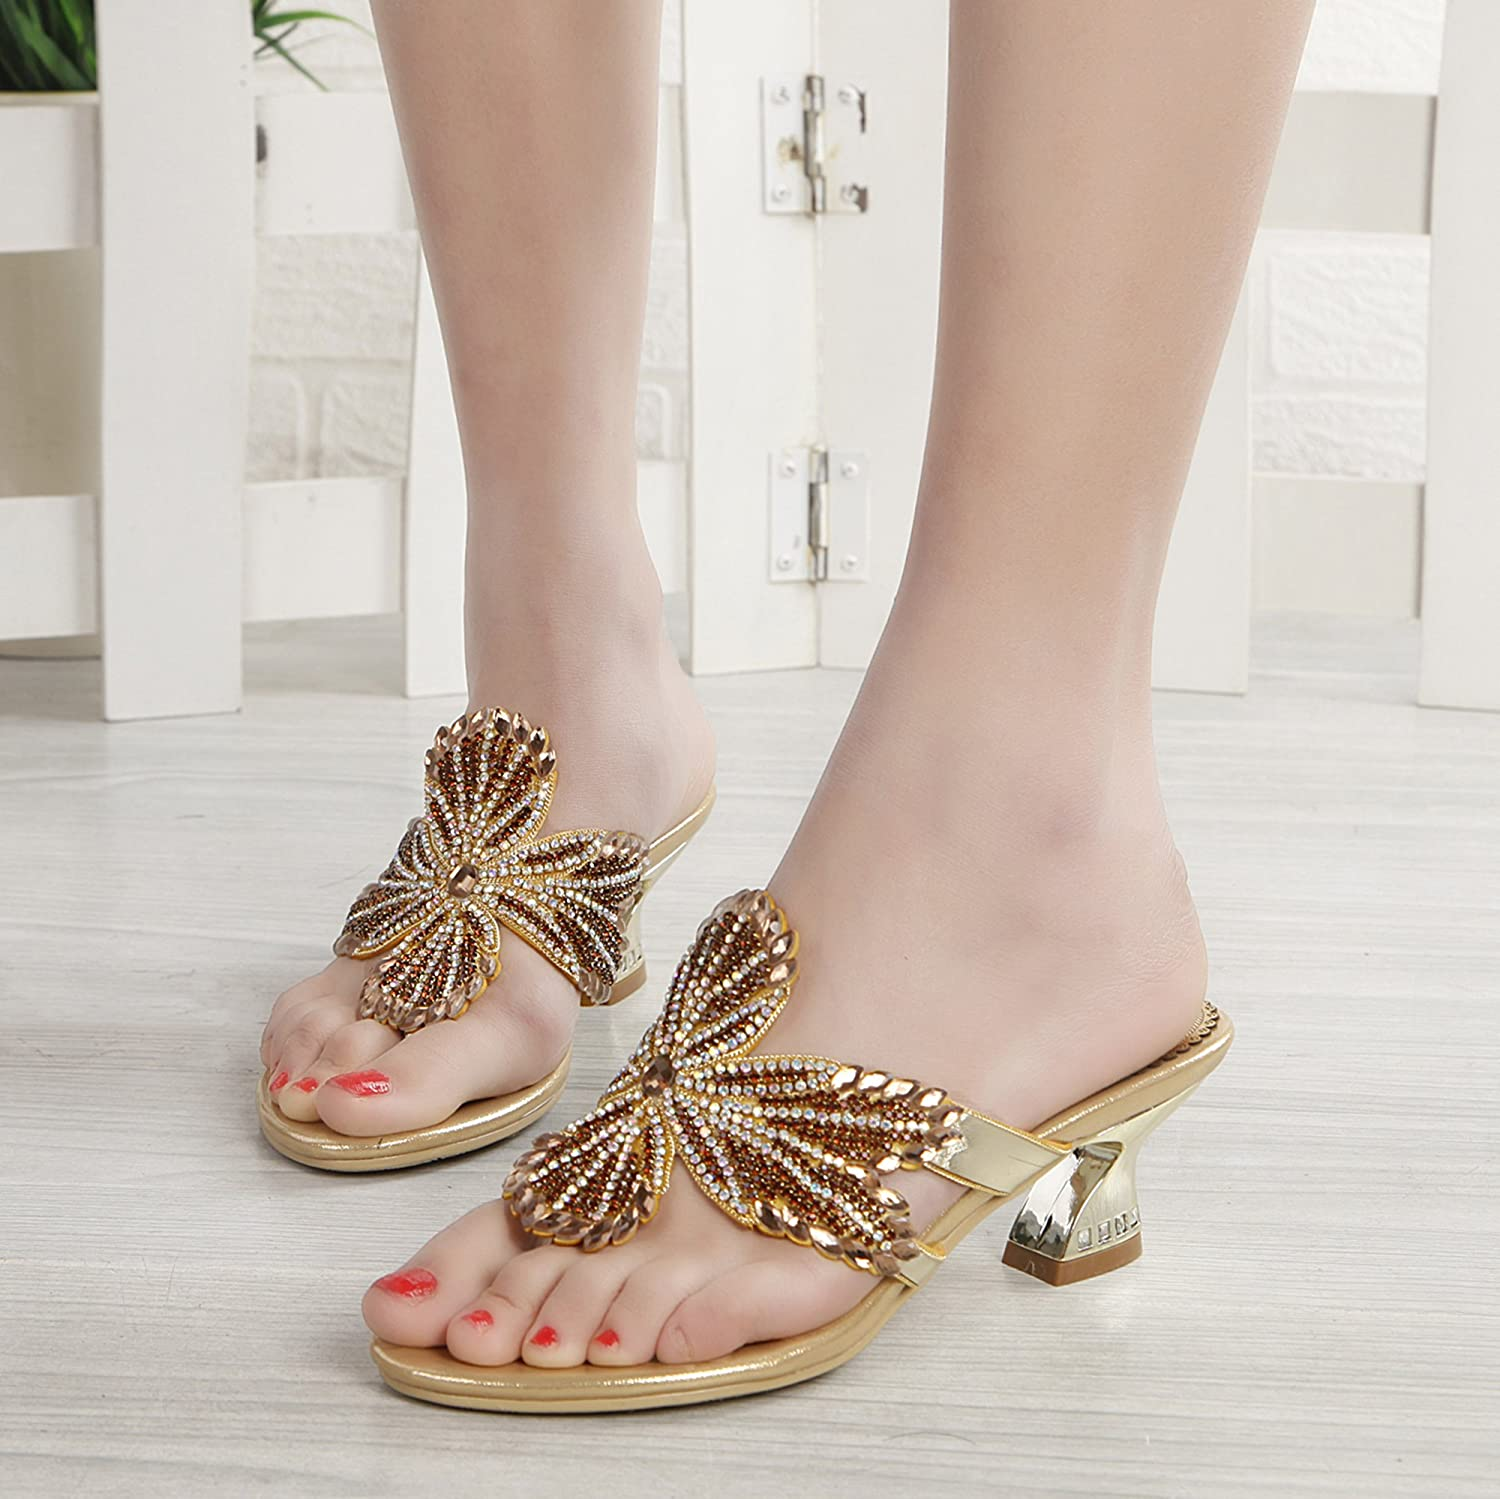 Abby Womens Comfort Flip Flops Fashion Leather Low Heel Sandals B071R3V4X8 5 B(M) US|Gold(6cm)